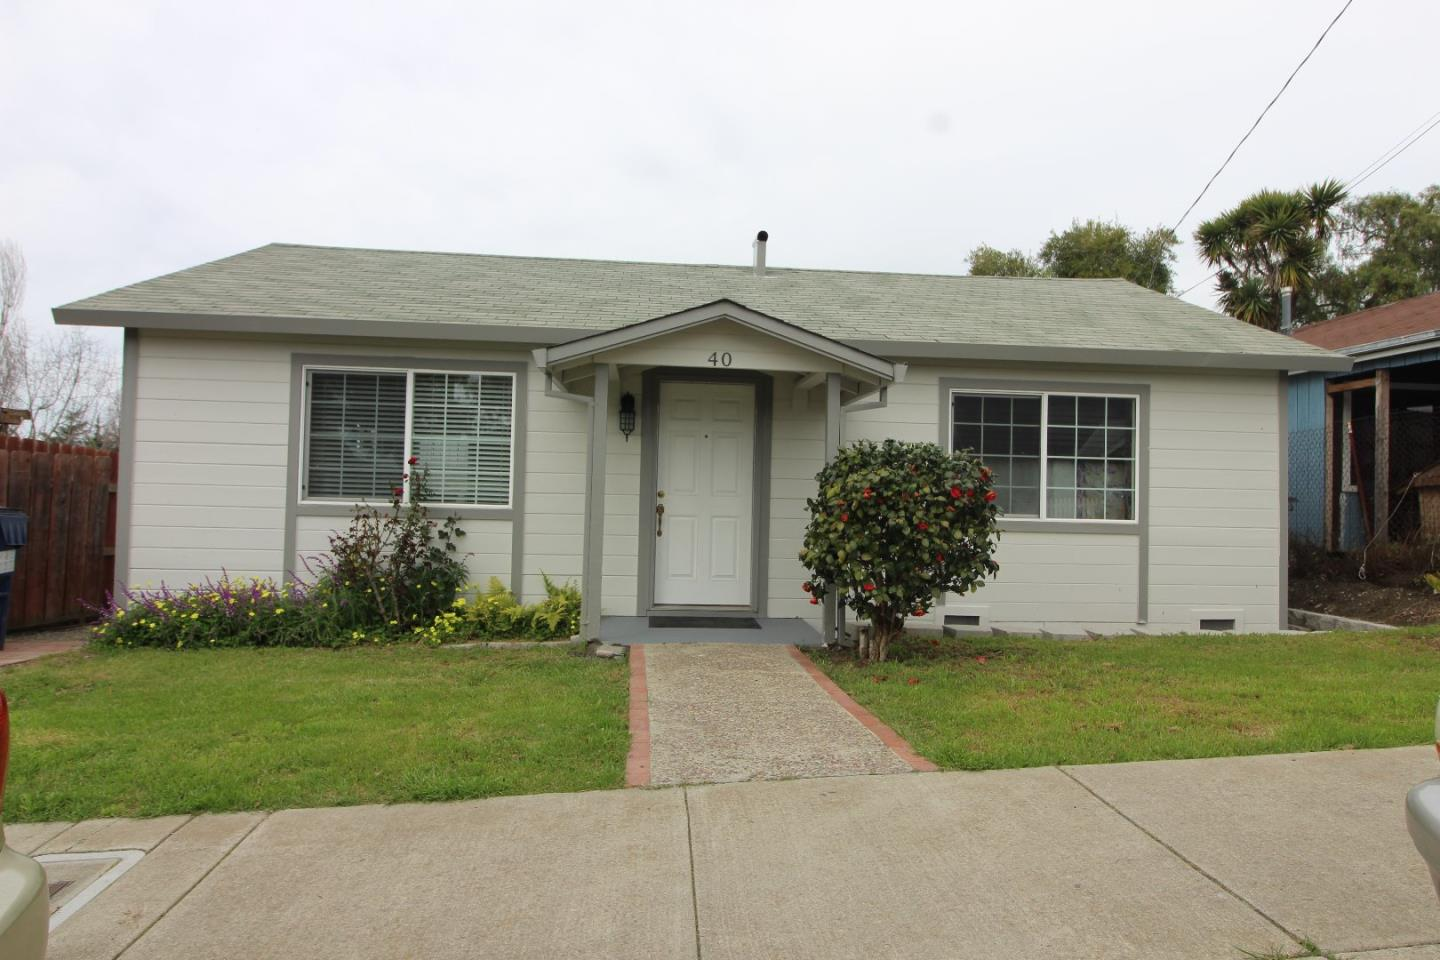 Detail Gallery Image 1 of 18 For 40 9th St, Watsonville, CA, 95076 - 3 Beds | 1 Baths